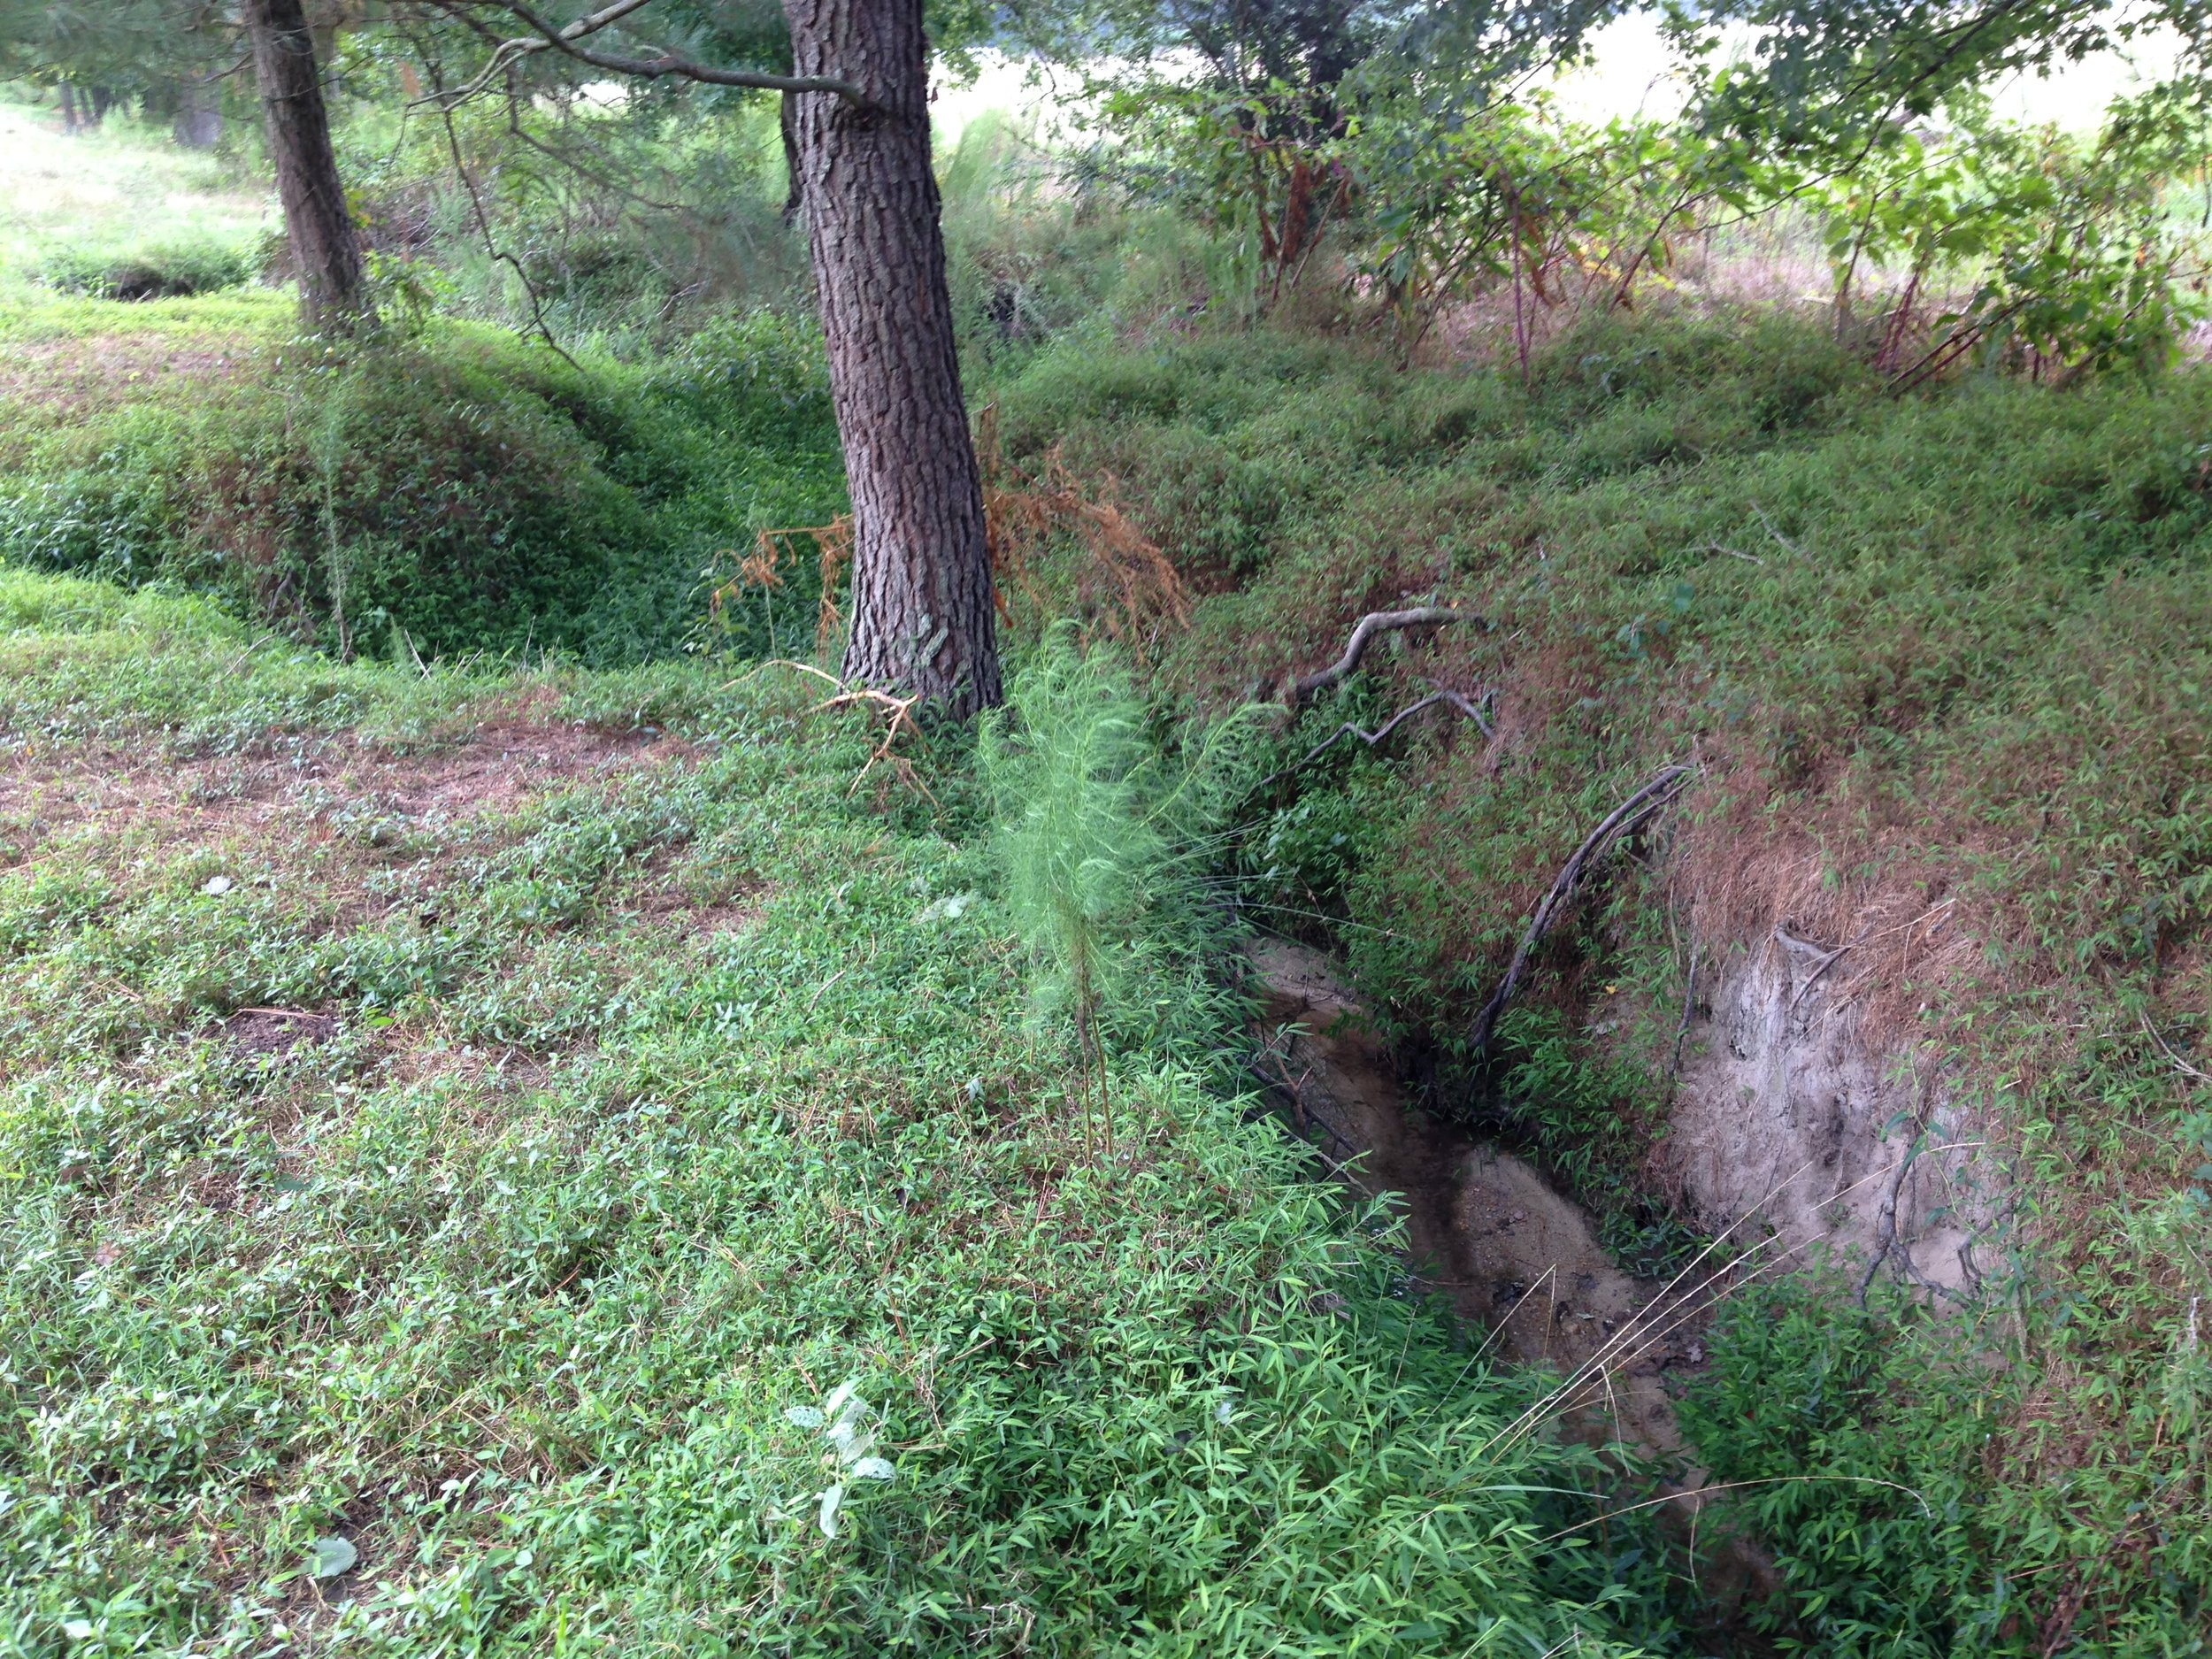 20150821_Lake Wendell Mit Prj_Reach 2 Looking US Entrenched Lower Reach.JPG